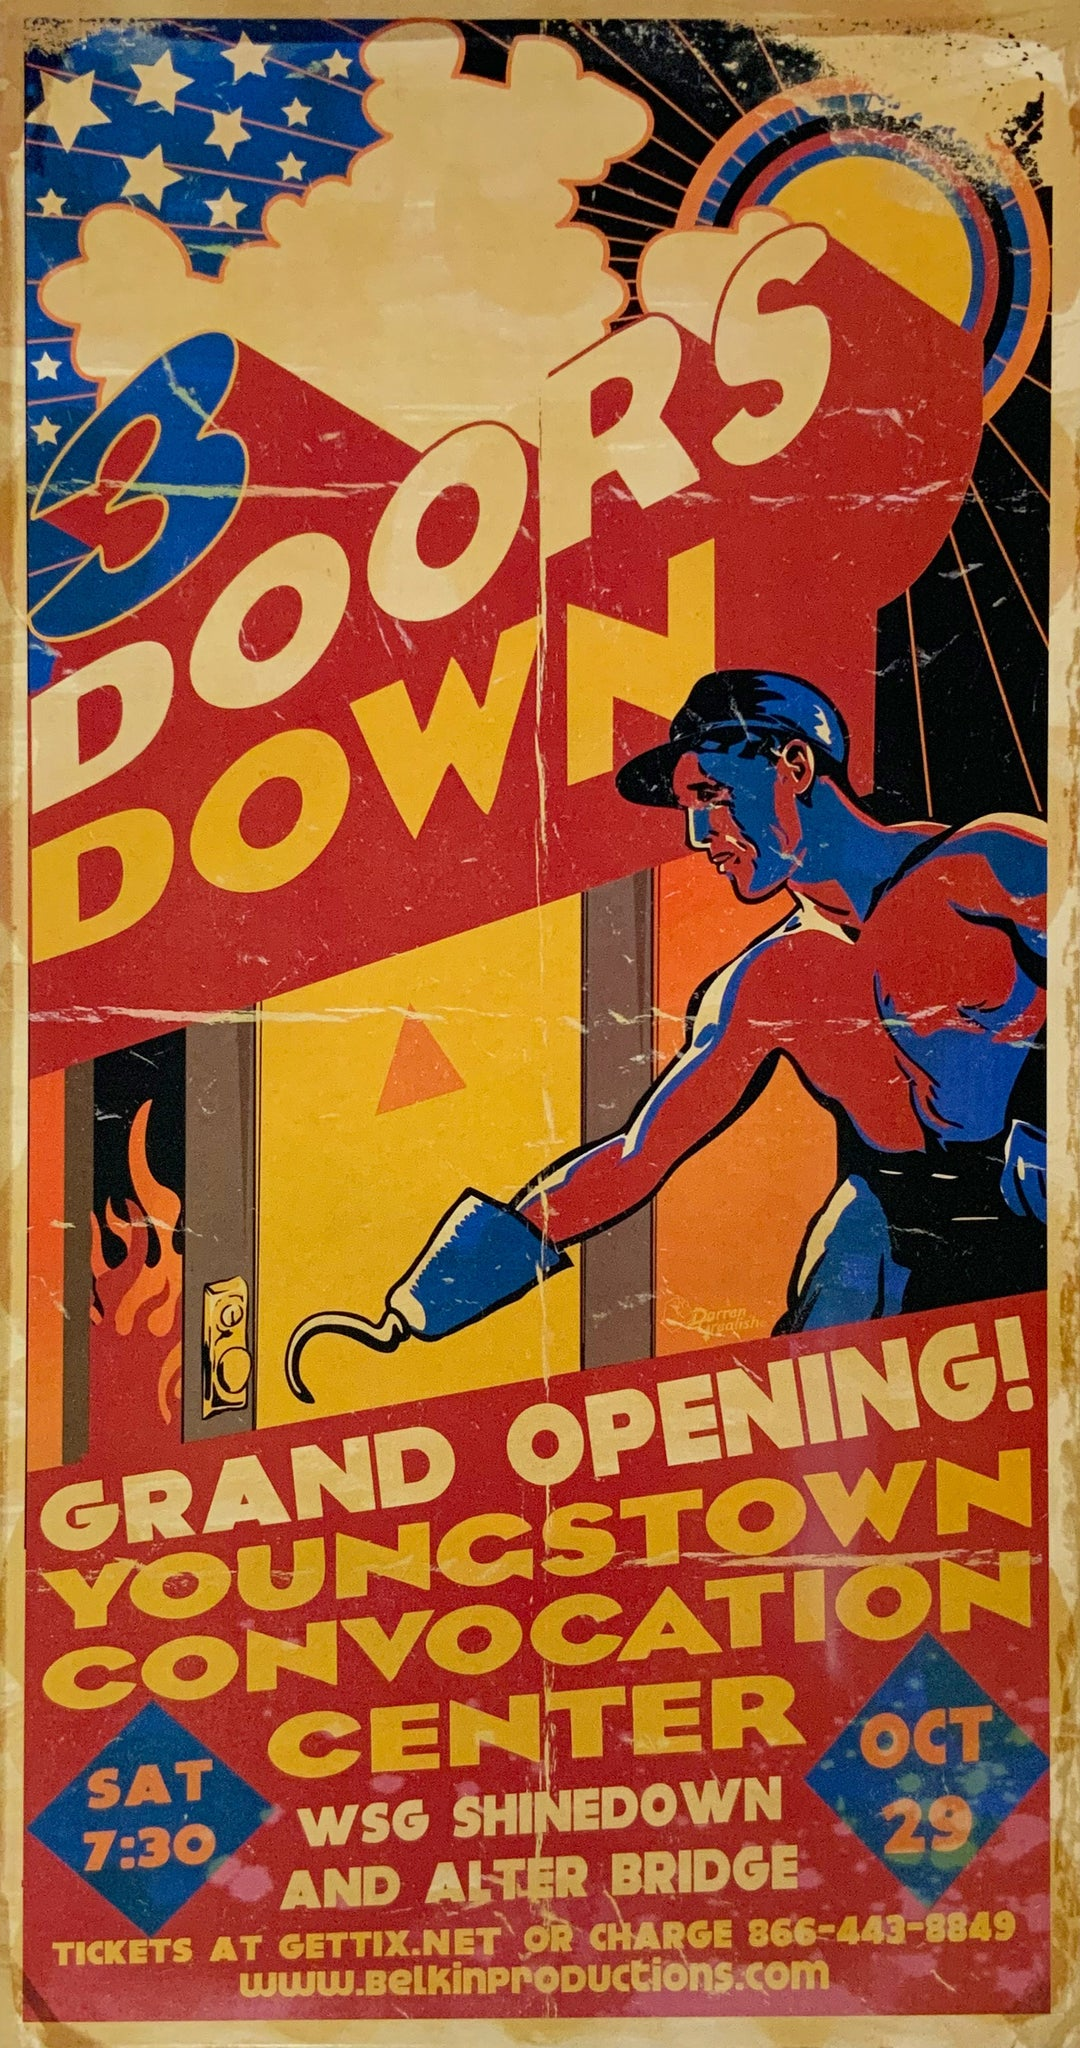 3 Doors Down Youngstown Convocation Center October 29th Handbill Poster